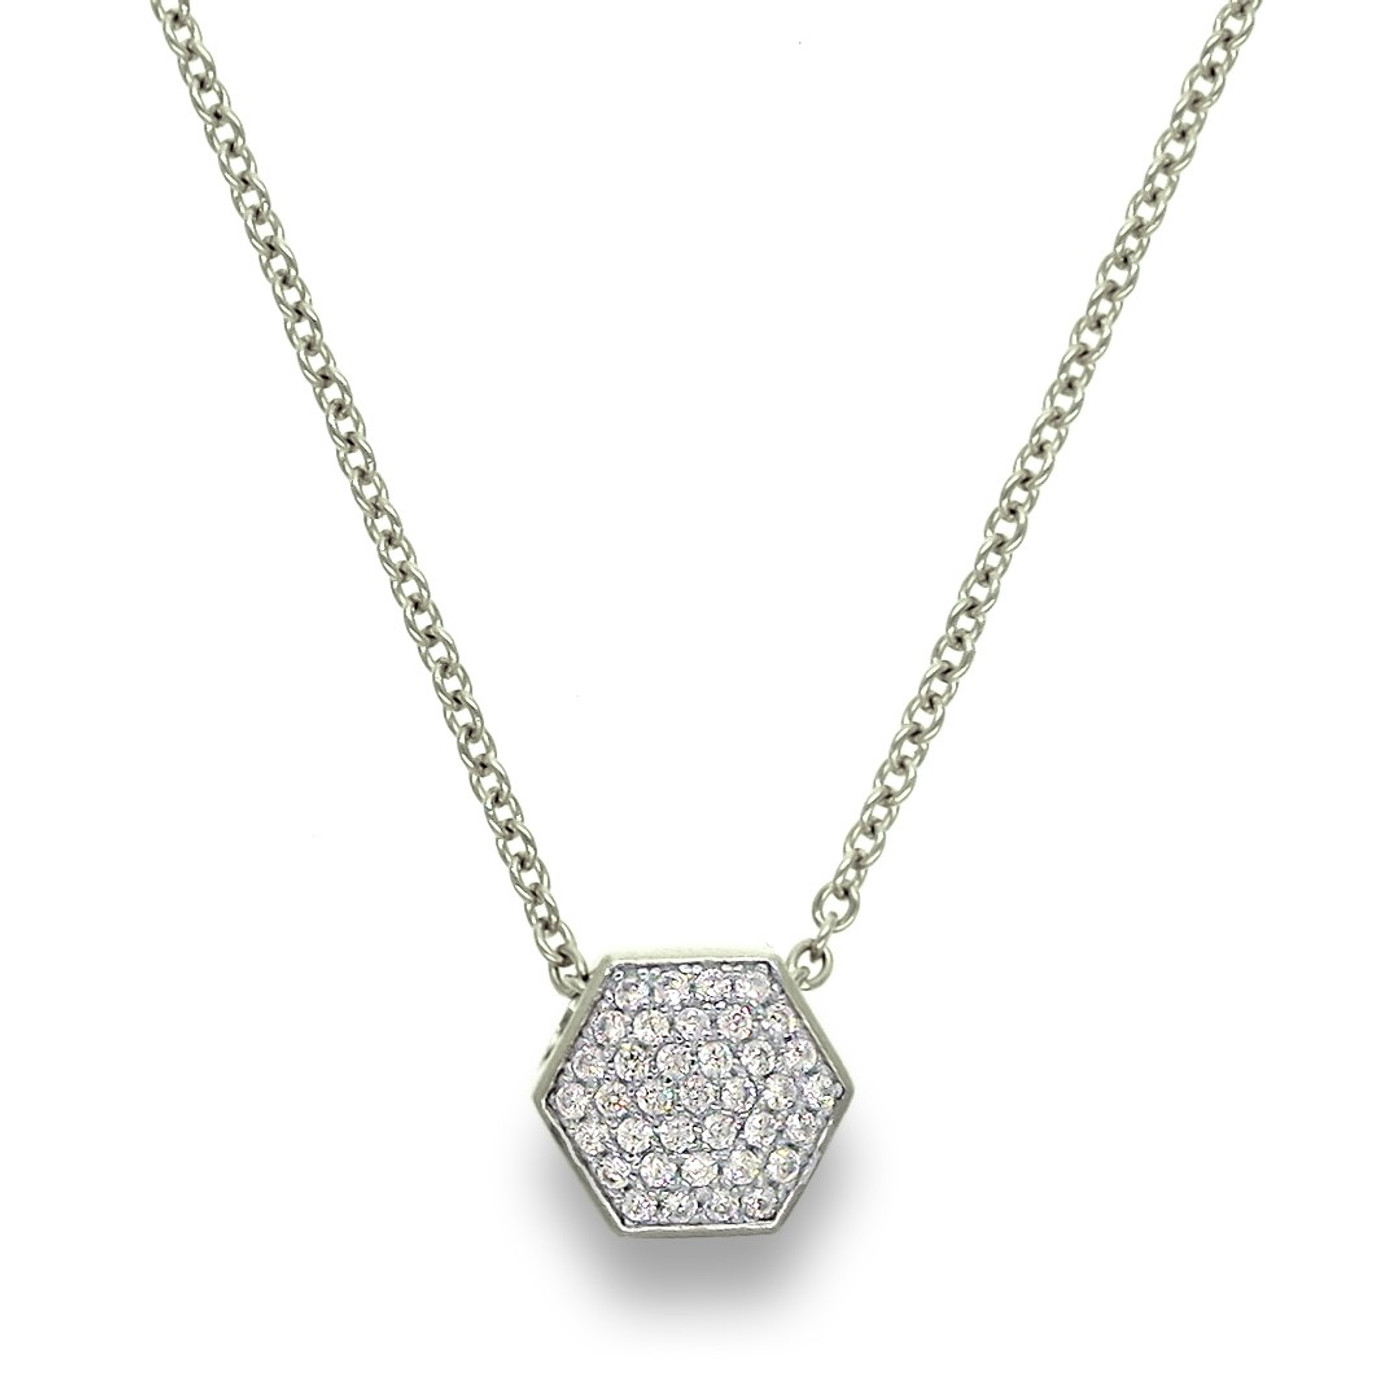 Sterling Silver Pave Nut Necklace